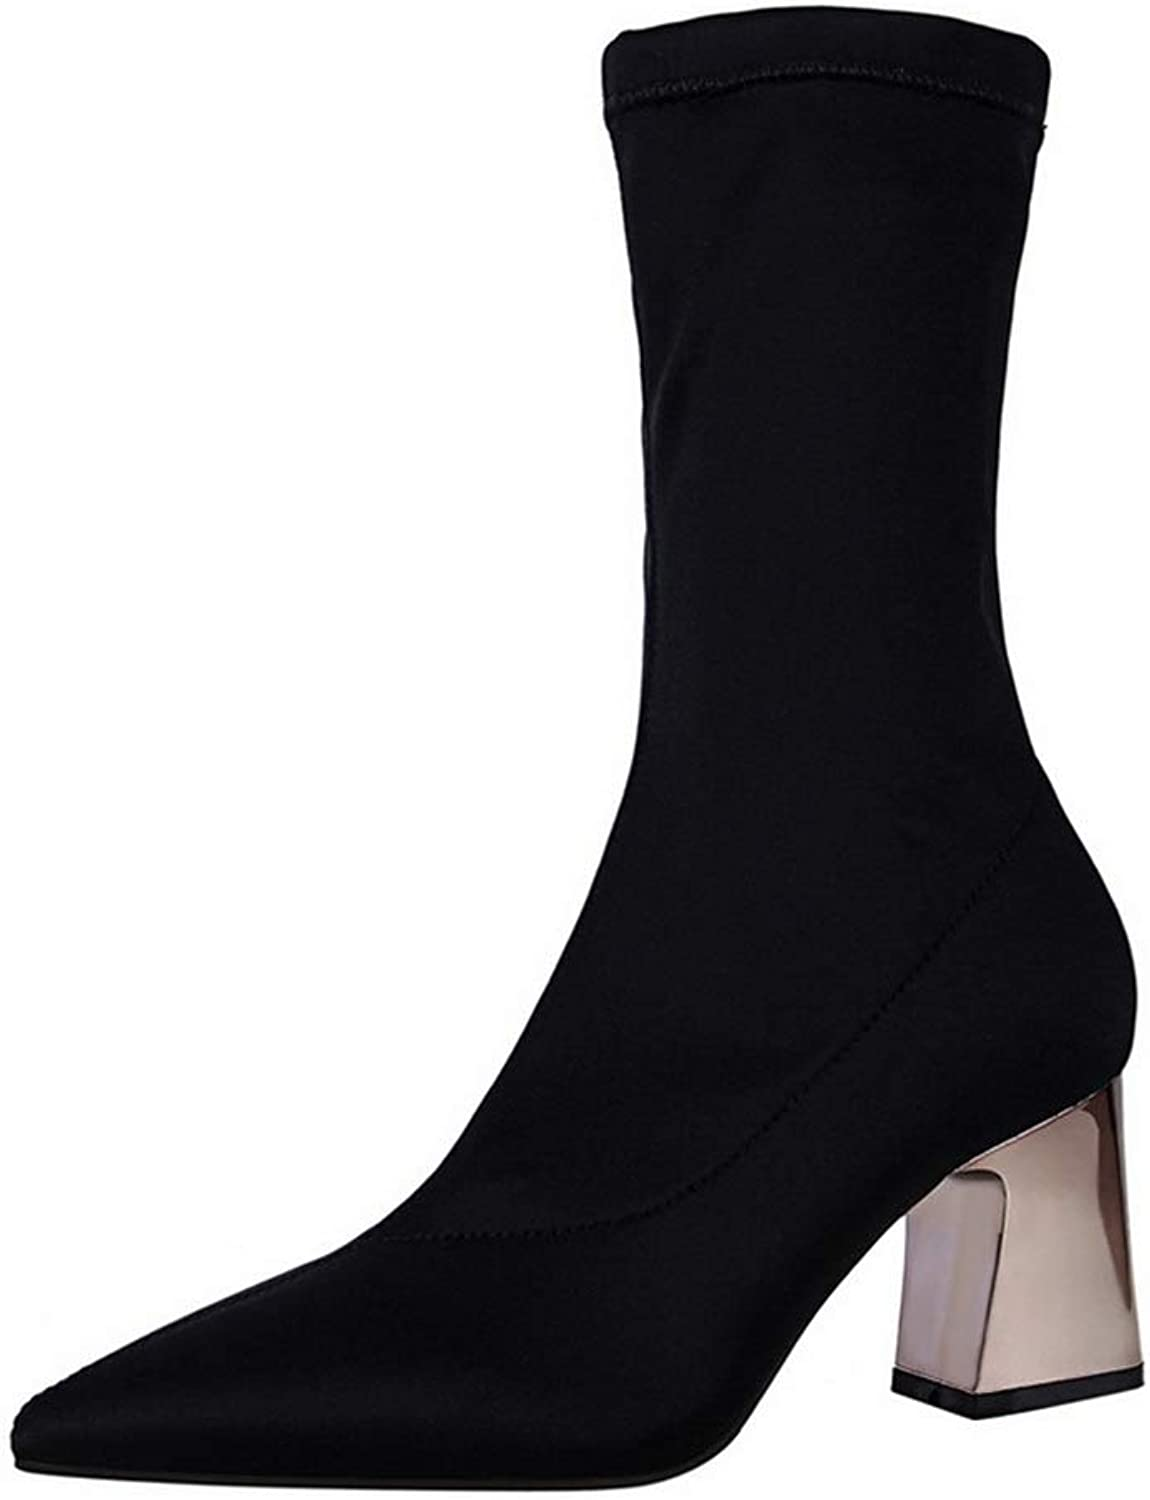 F1rst Rate Women's Chelsea Boot - Casual High Heel Pointed Toe Slip On Ankle Bootie